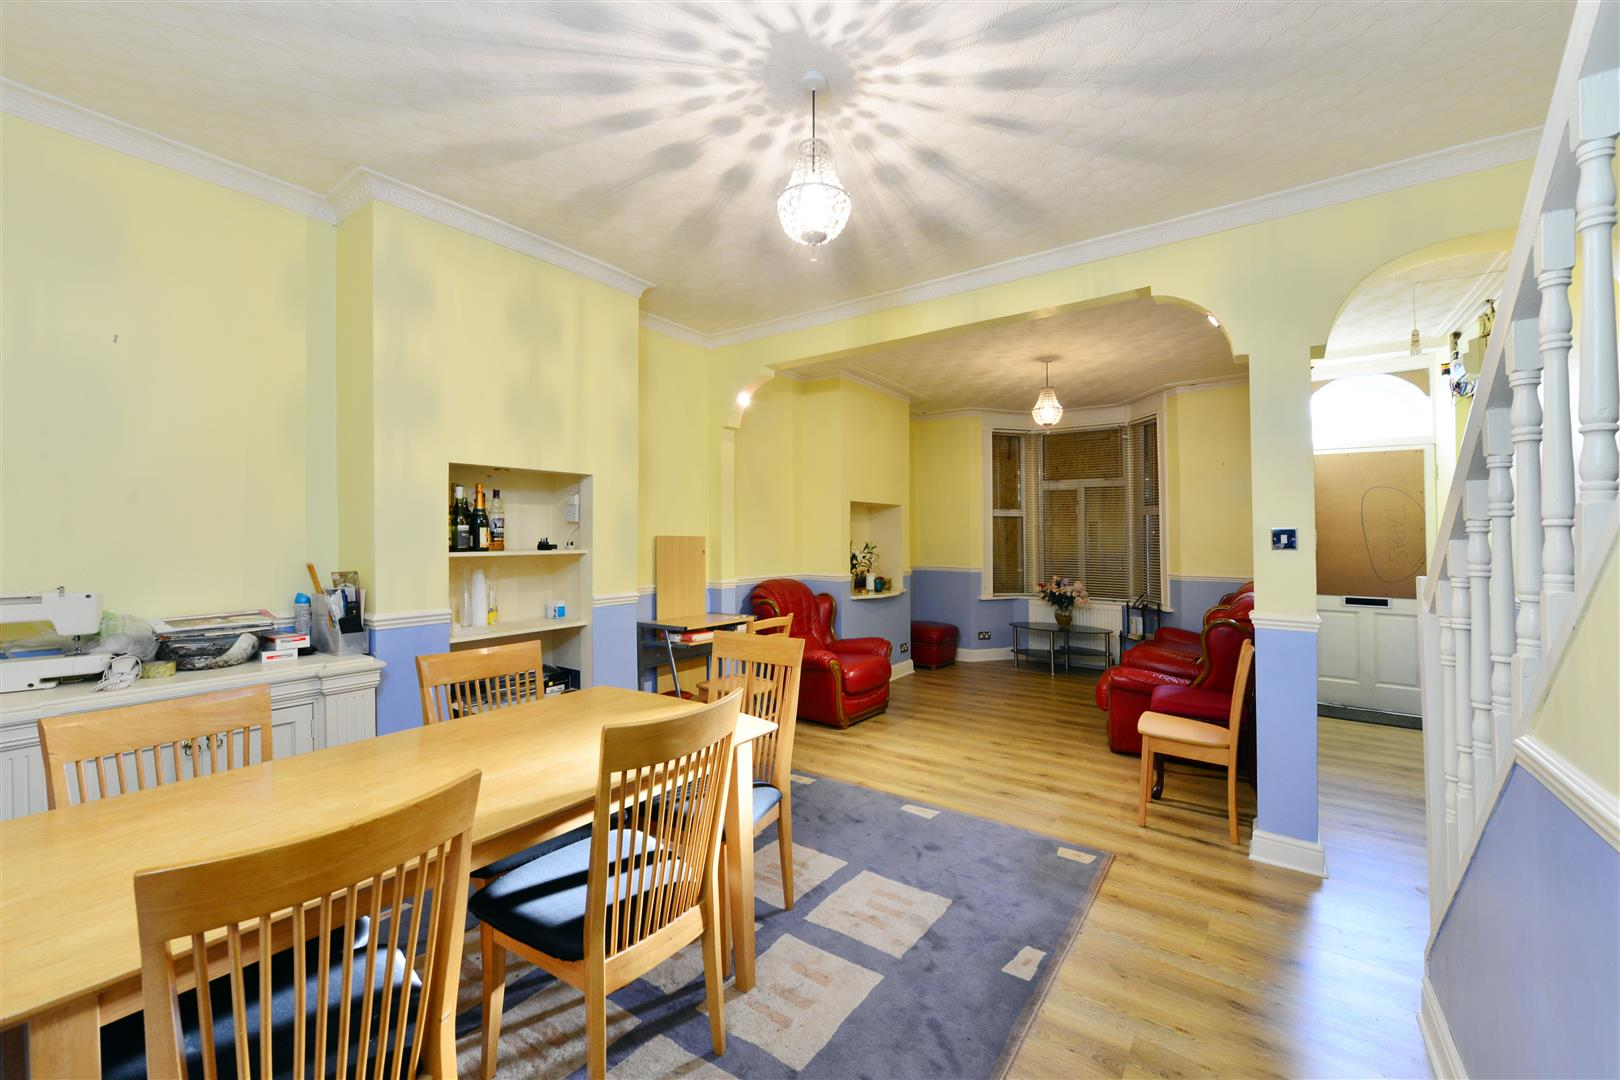 3 Bedroom House – Lynmouth Road, Walthamstow